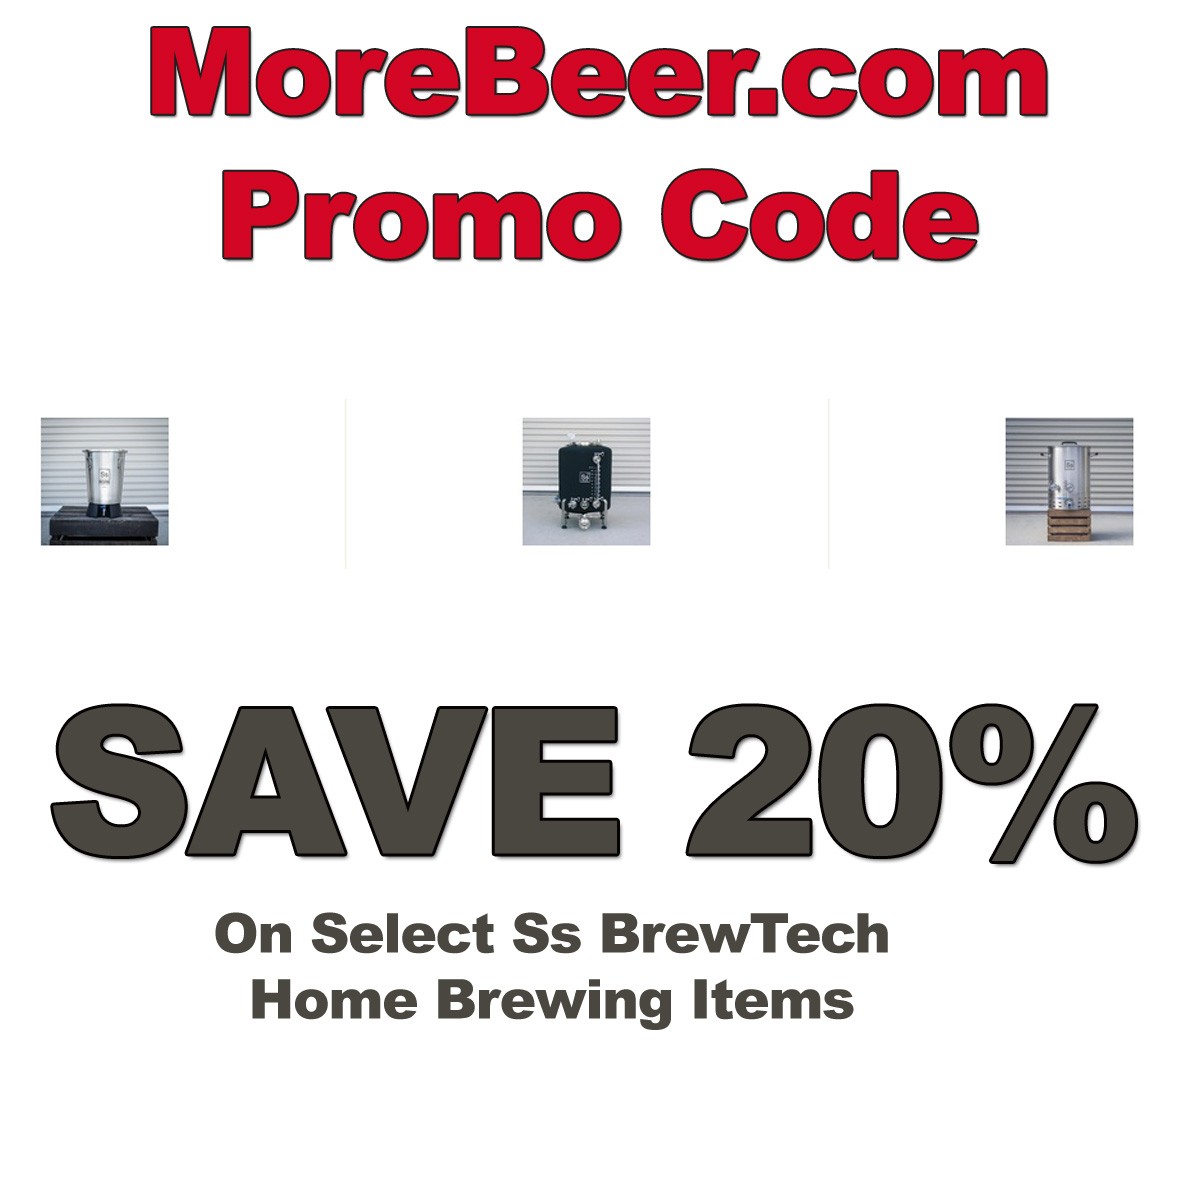 Home Wine Making Coupon Codes for Save 20% On Select SS BrewTech Home Brewing Items With This MoreBeer.com Promo Code Coupon Code